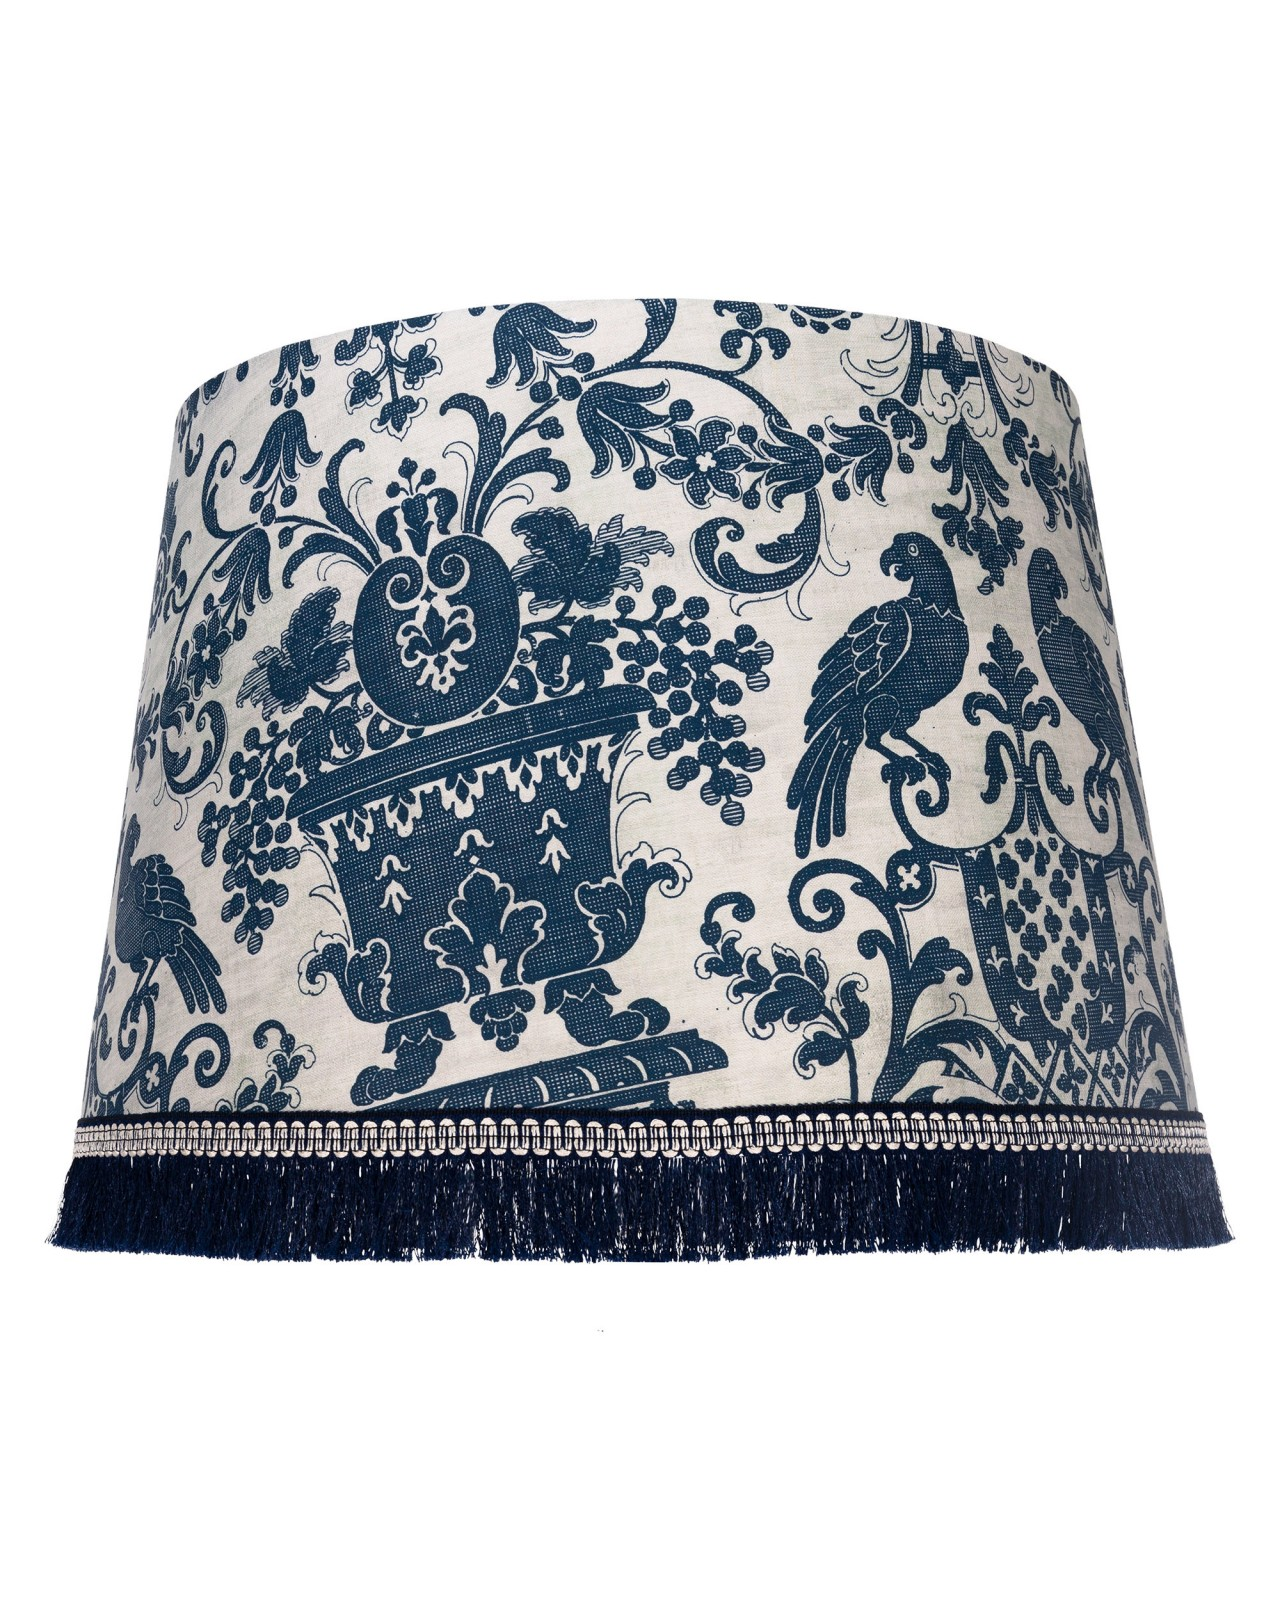 BAROQUE PATTERN Lampshade